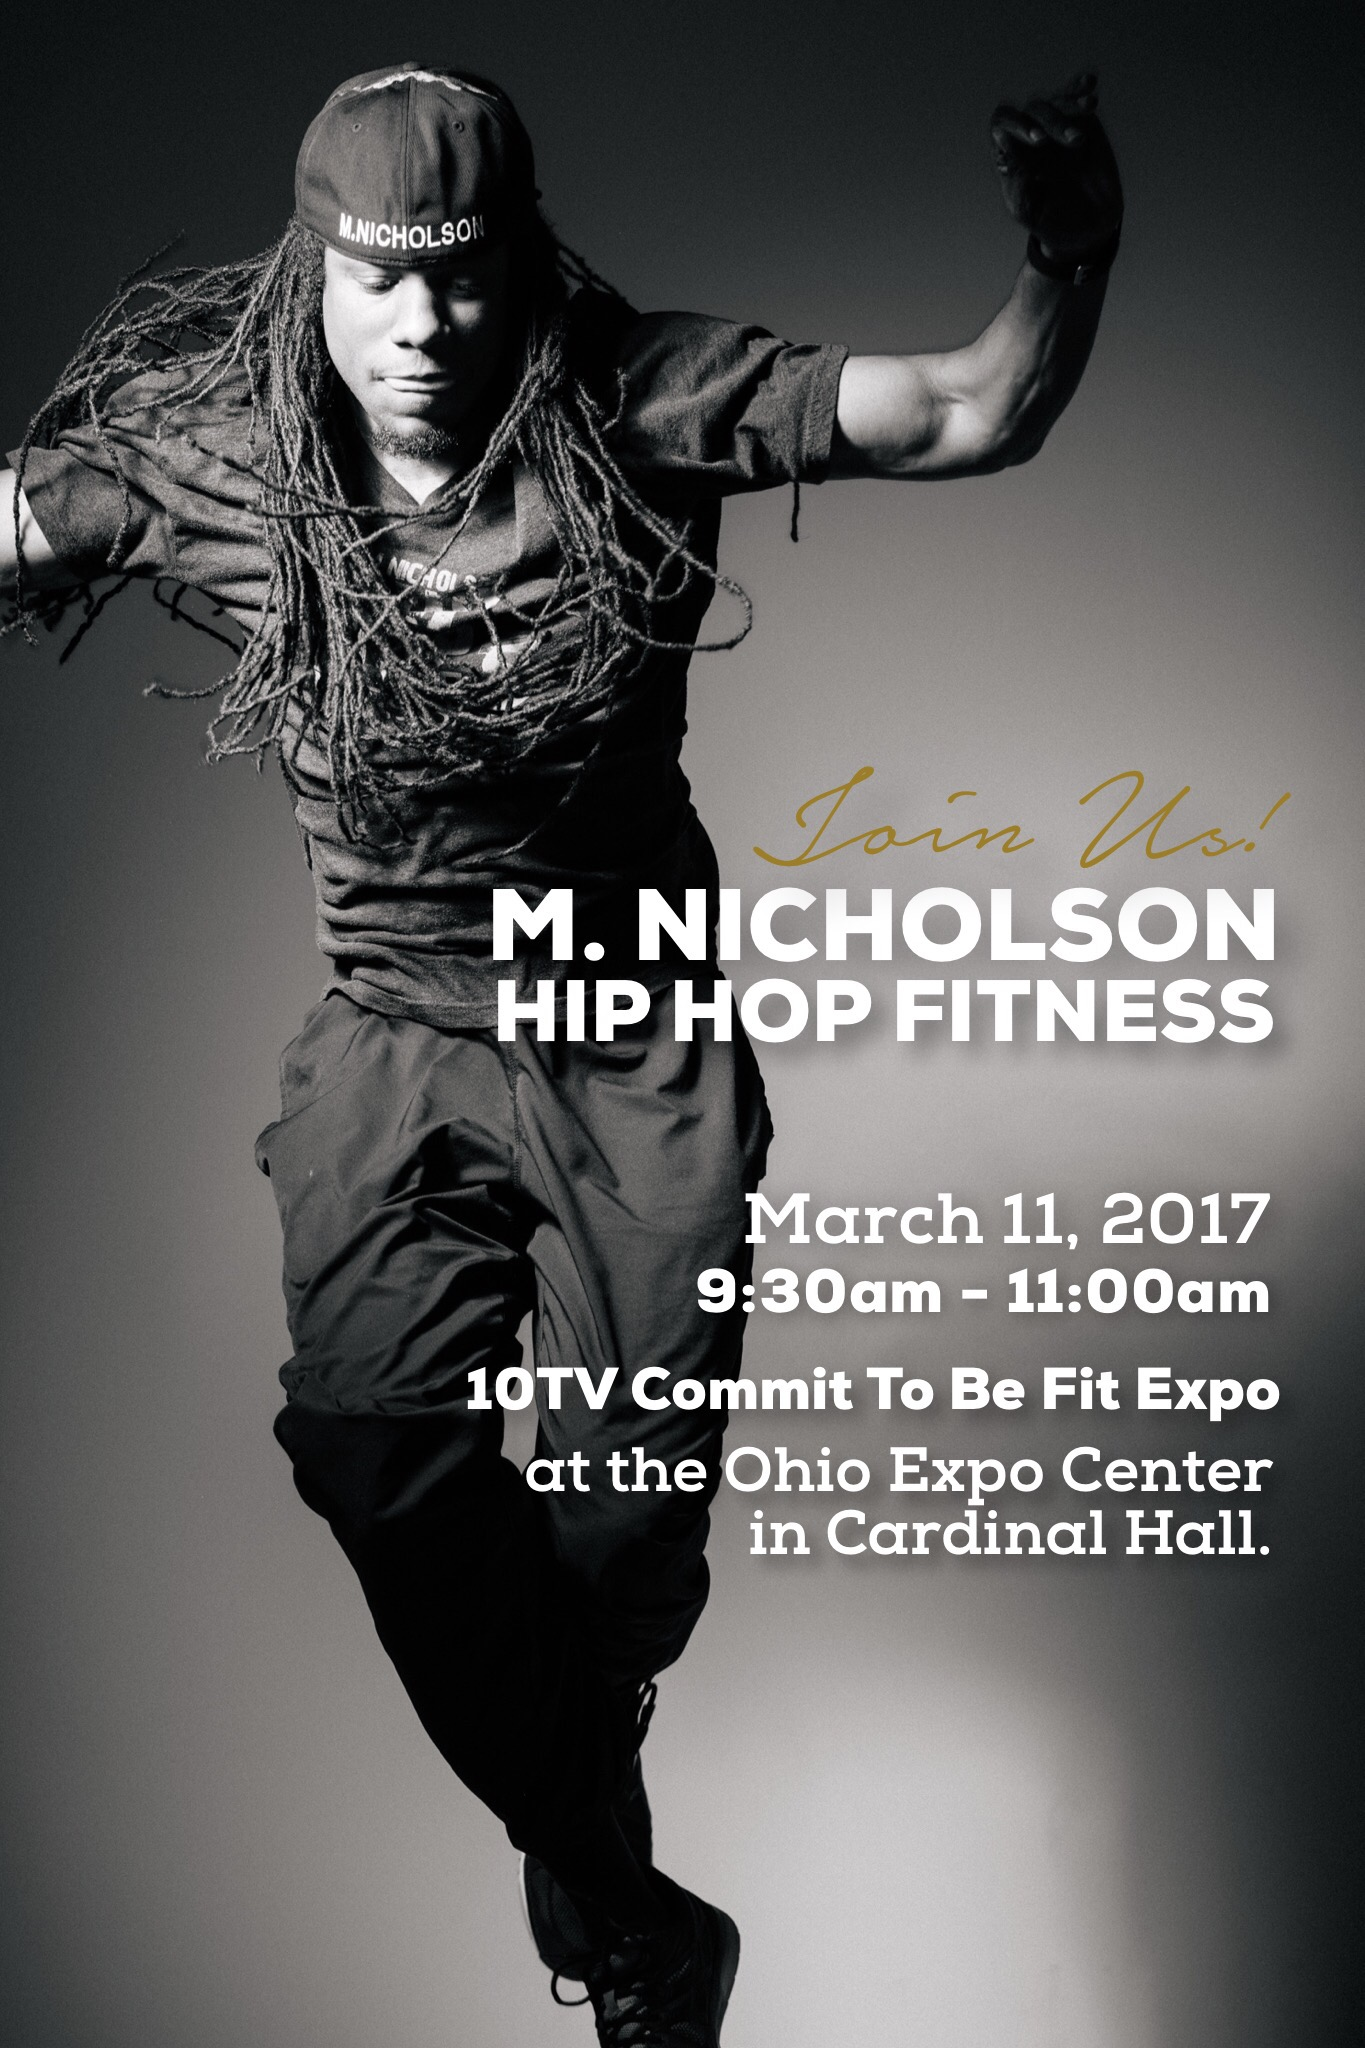 Mike Nicholson of M. Nicholson Hip Hop Fitness will be at 10TV Commit To Be Fit